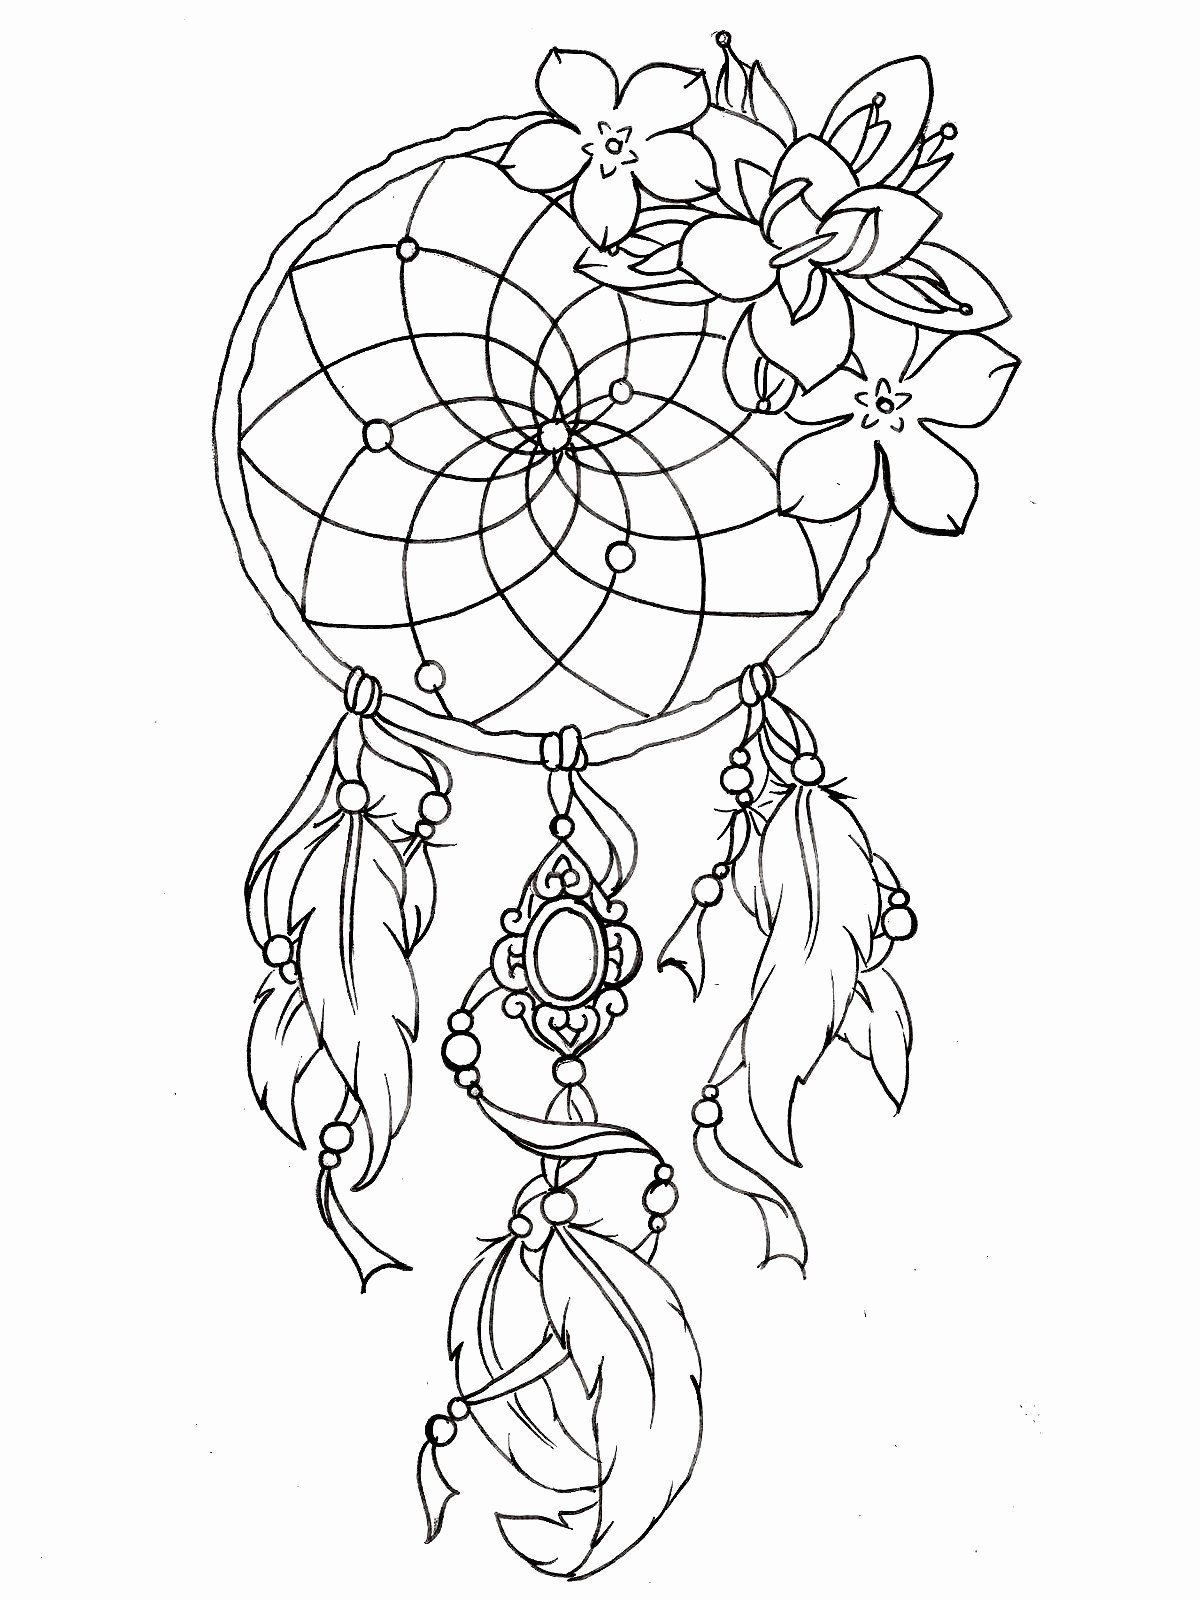 Dream Catcher Coloring Page Best Of Dream Catcher Coloring Pages